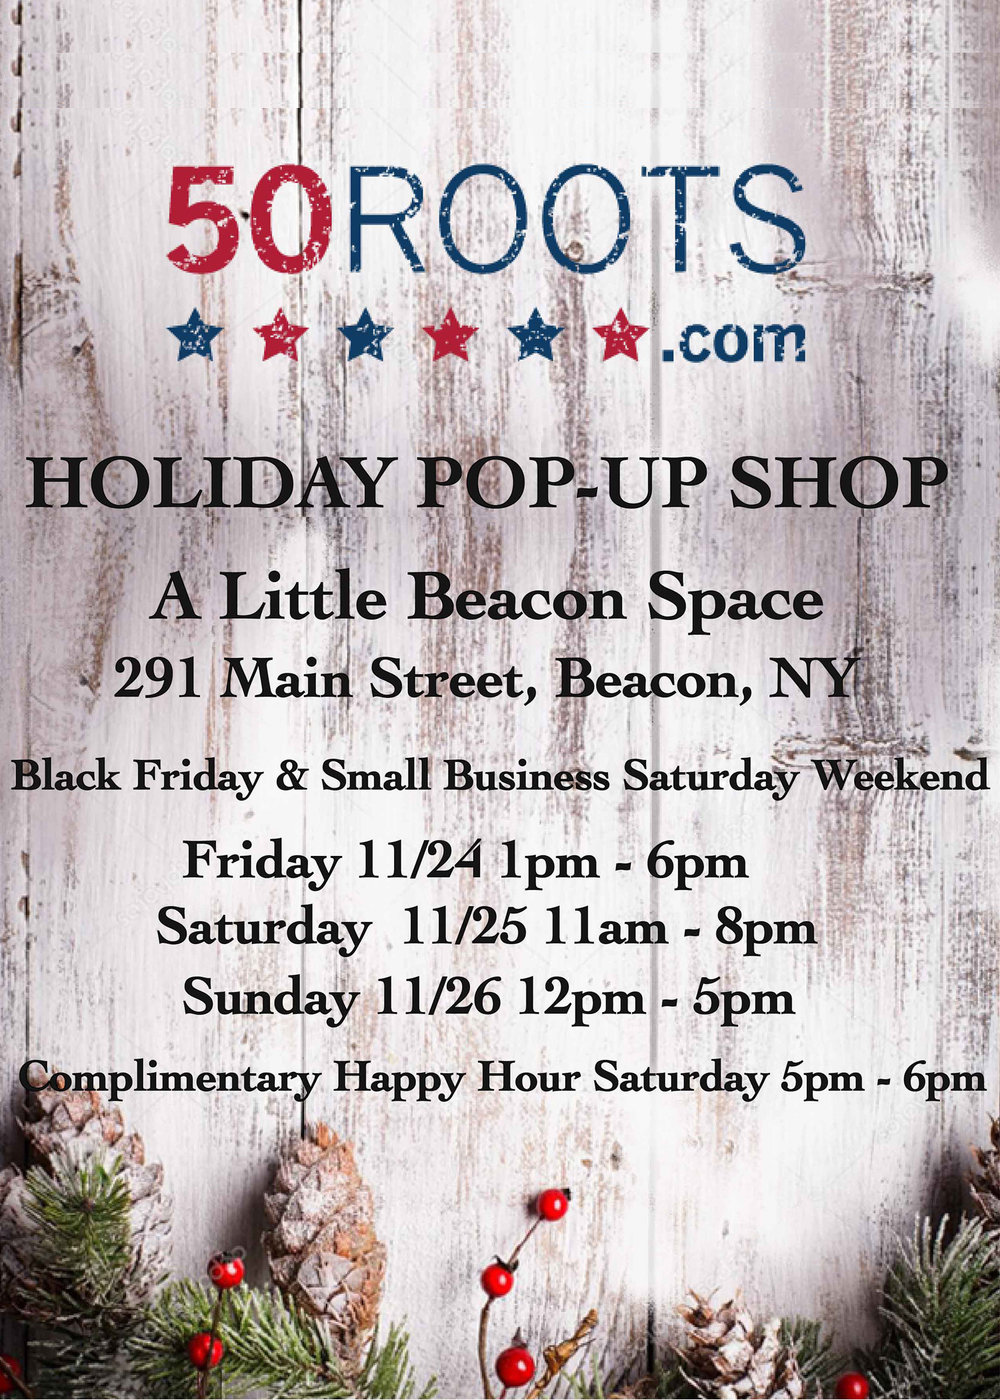 2017 Holiday Pop-Up Shop Flyer 5*7.jpg